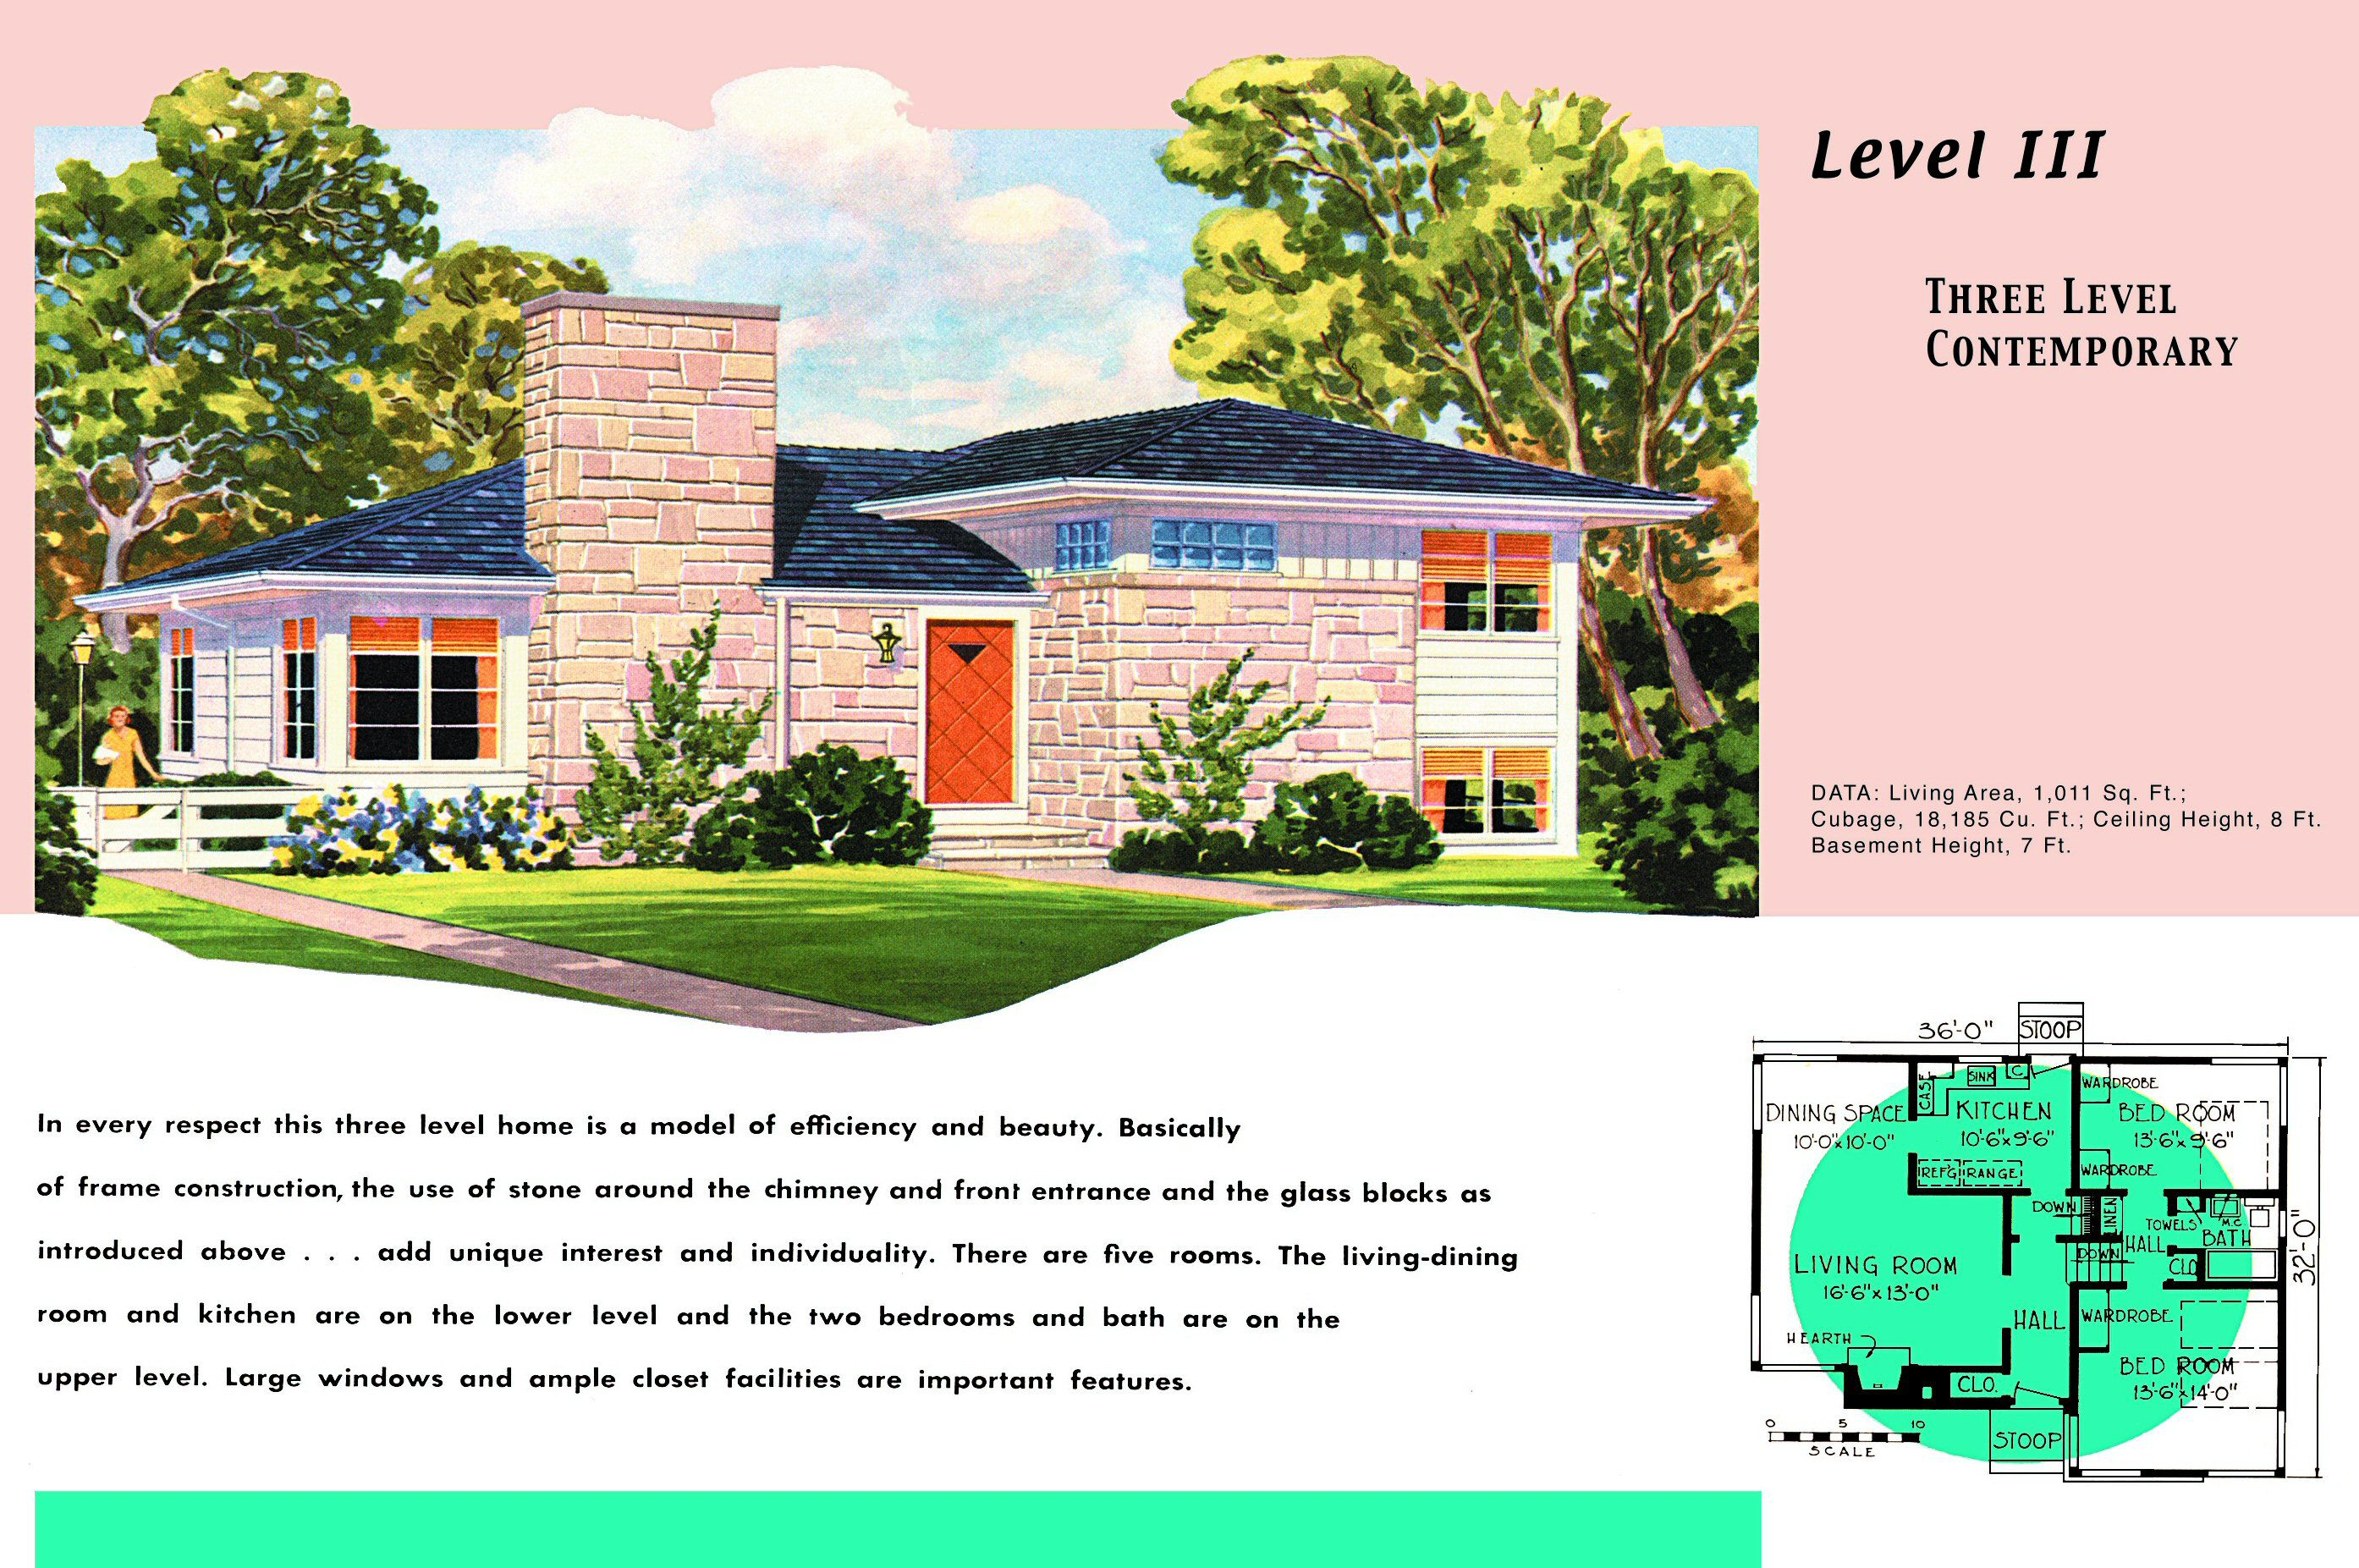 1950s floor plan and rendering of ranch style house with two levels and a basement